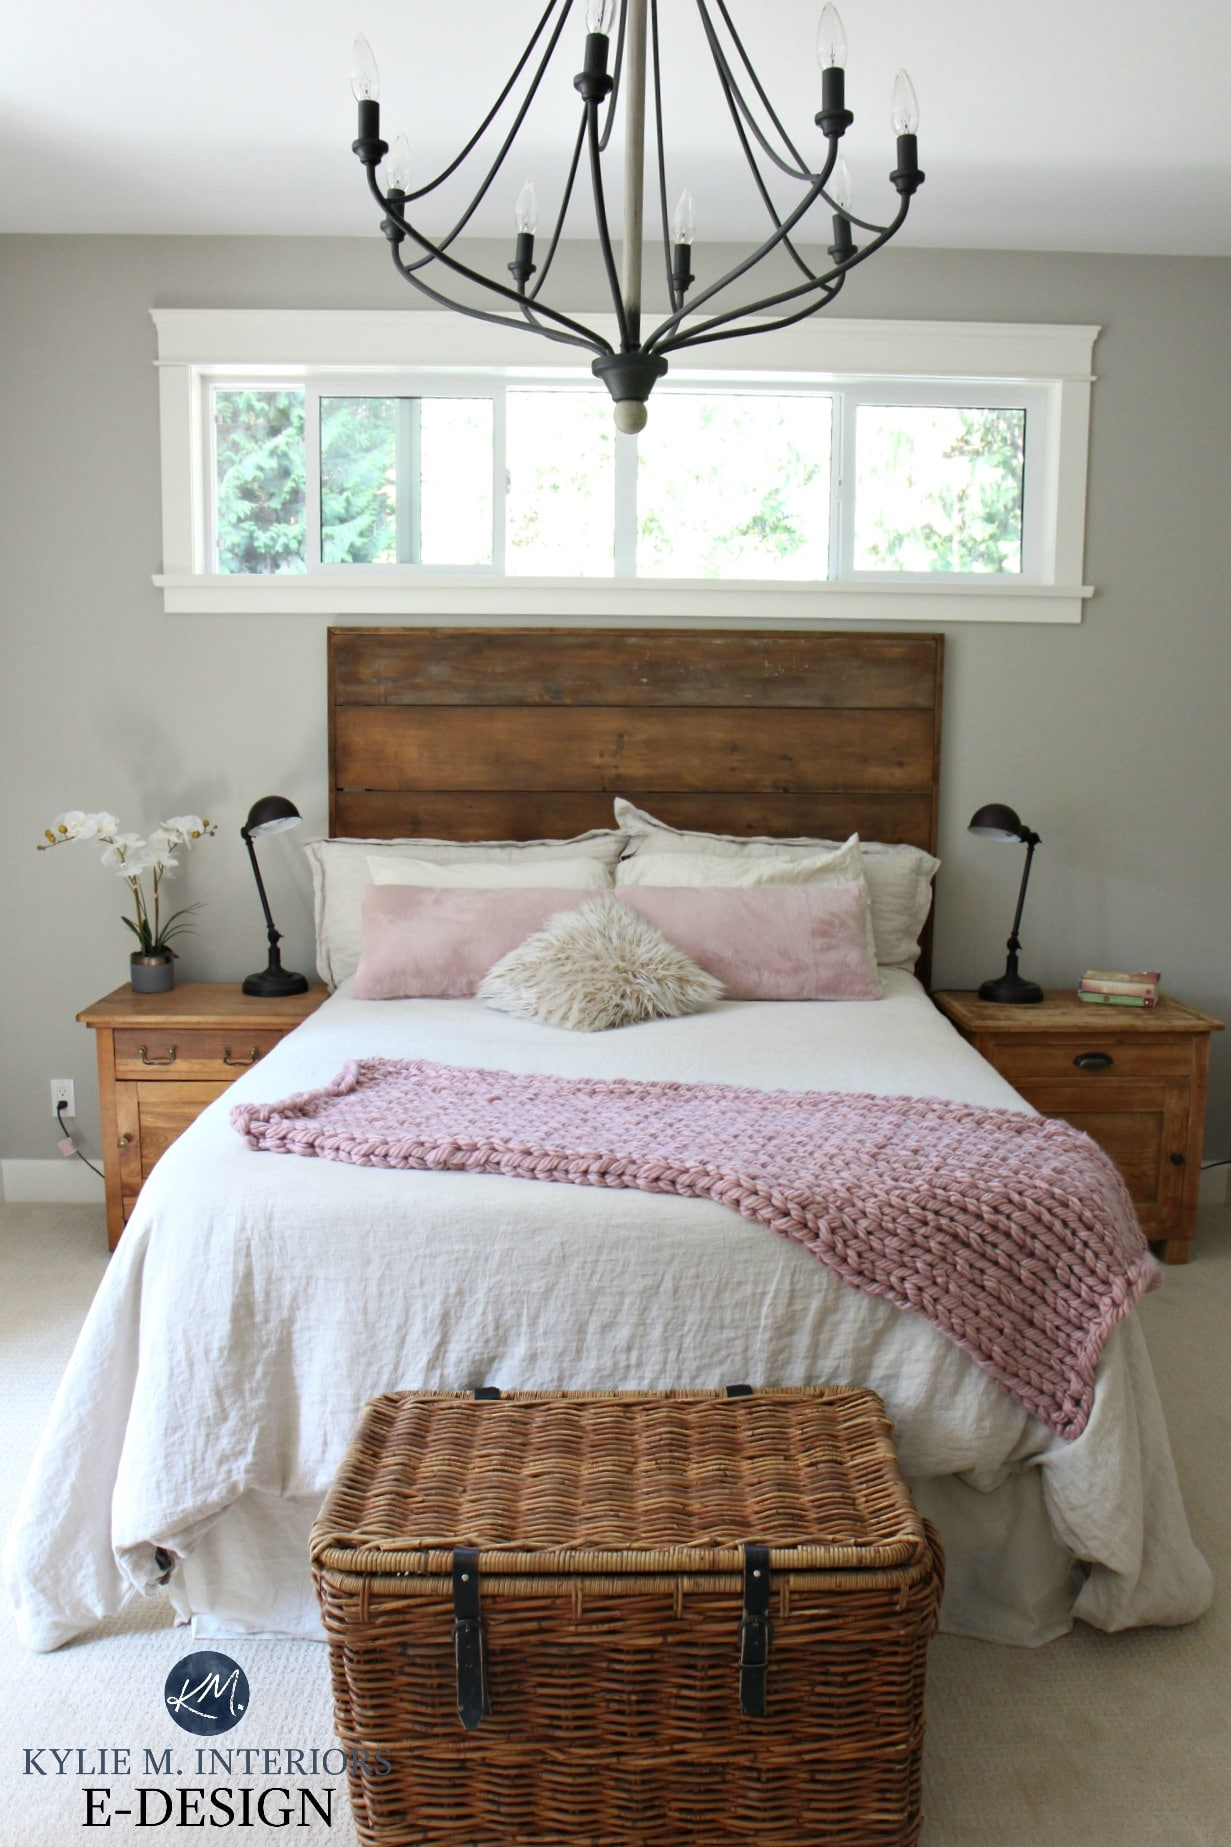 Rustic romantic style bedroom with reclaimed wood benjamin moore revere pewter chandelier pink blush accents kylie m interiors edesign online paint